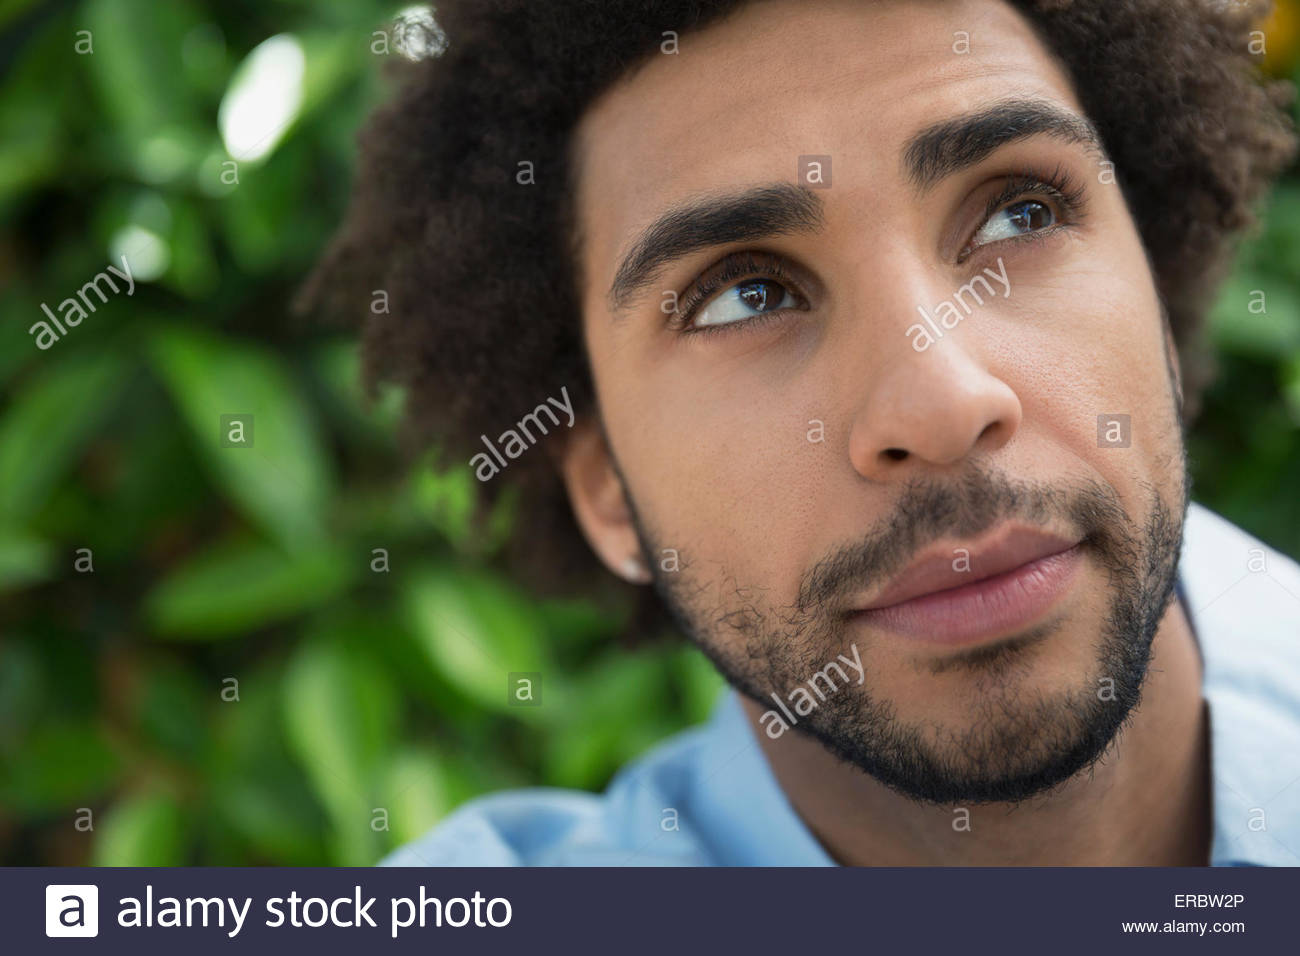 Close up portrait of smiling man looking up Photo Stock